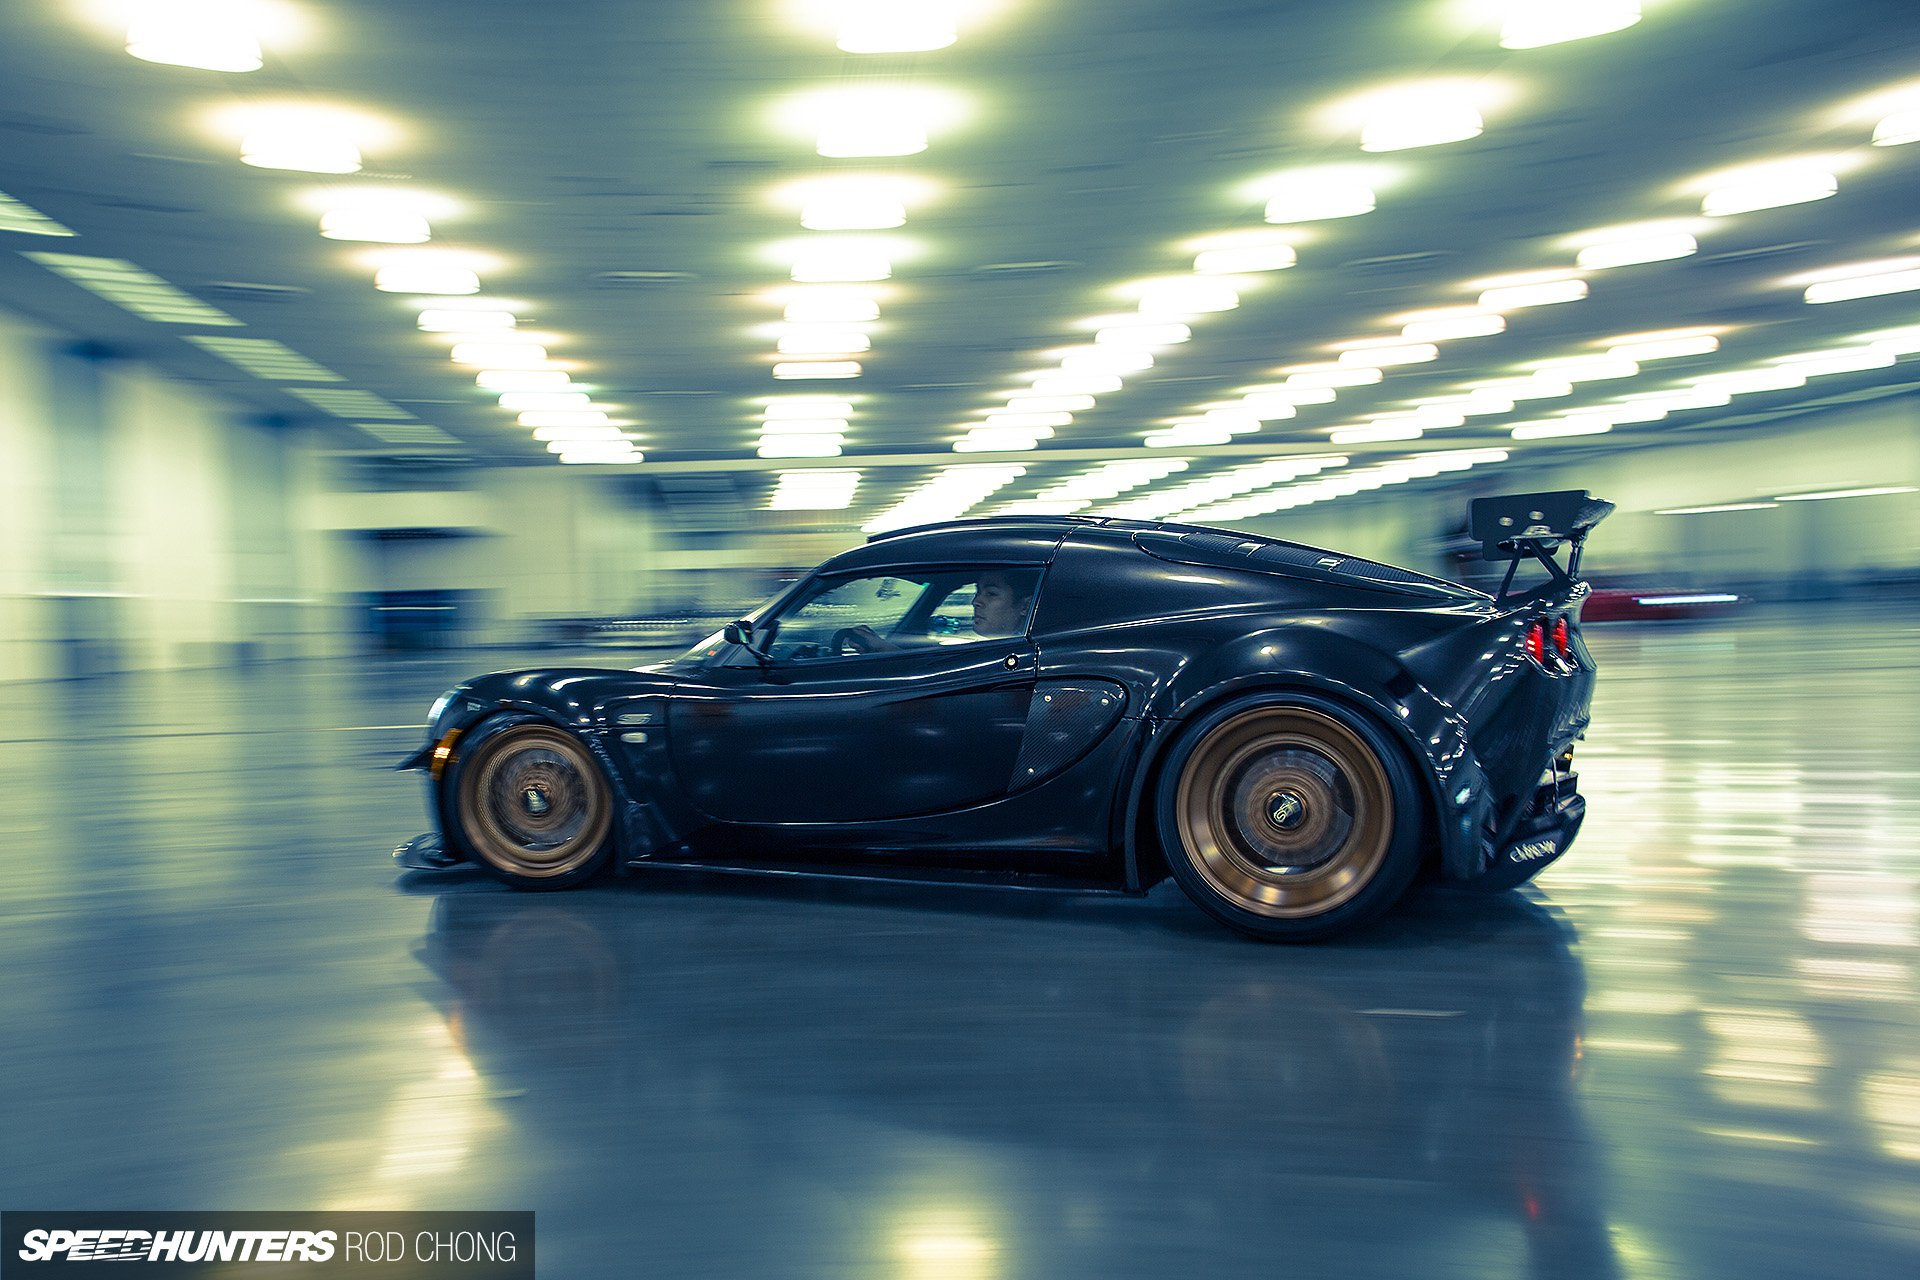 Elise Exige Lotus Stance Supercharger WideBody Tuning Supercar Wallpaper  1920x1280 453005